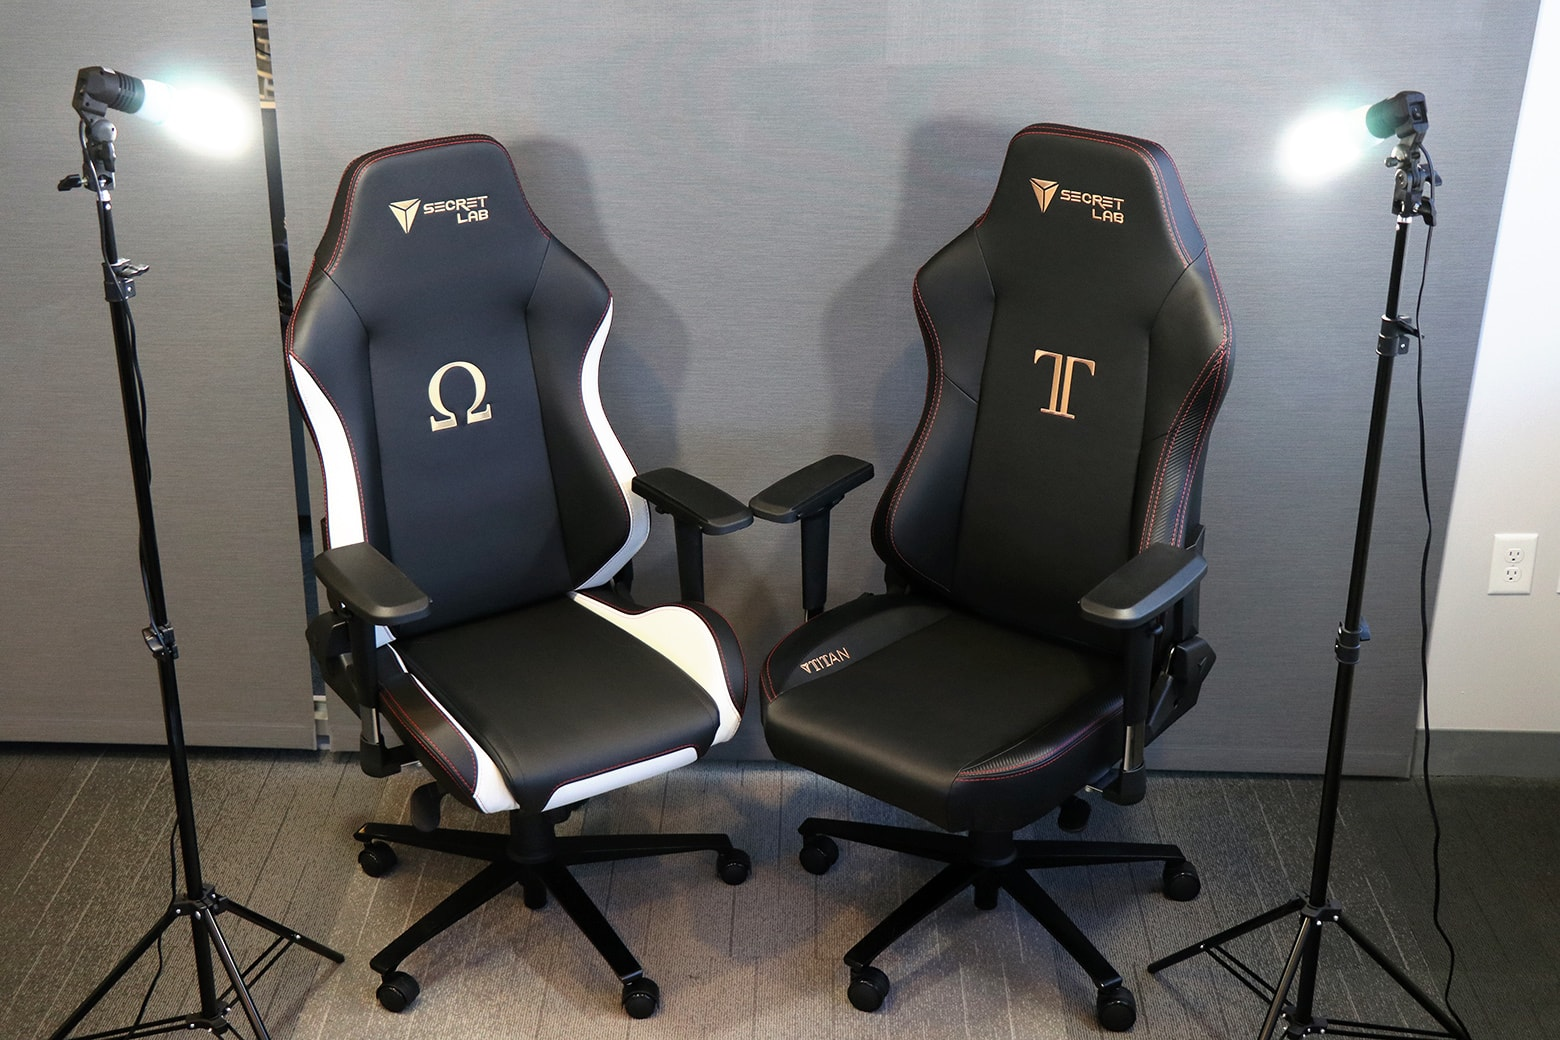 Titan Chair Hands On With Secretlab Gaming Chairs Omega And Titan